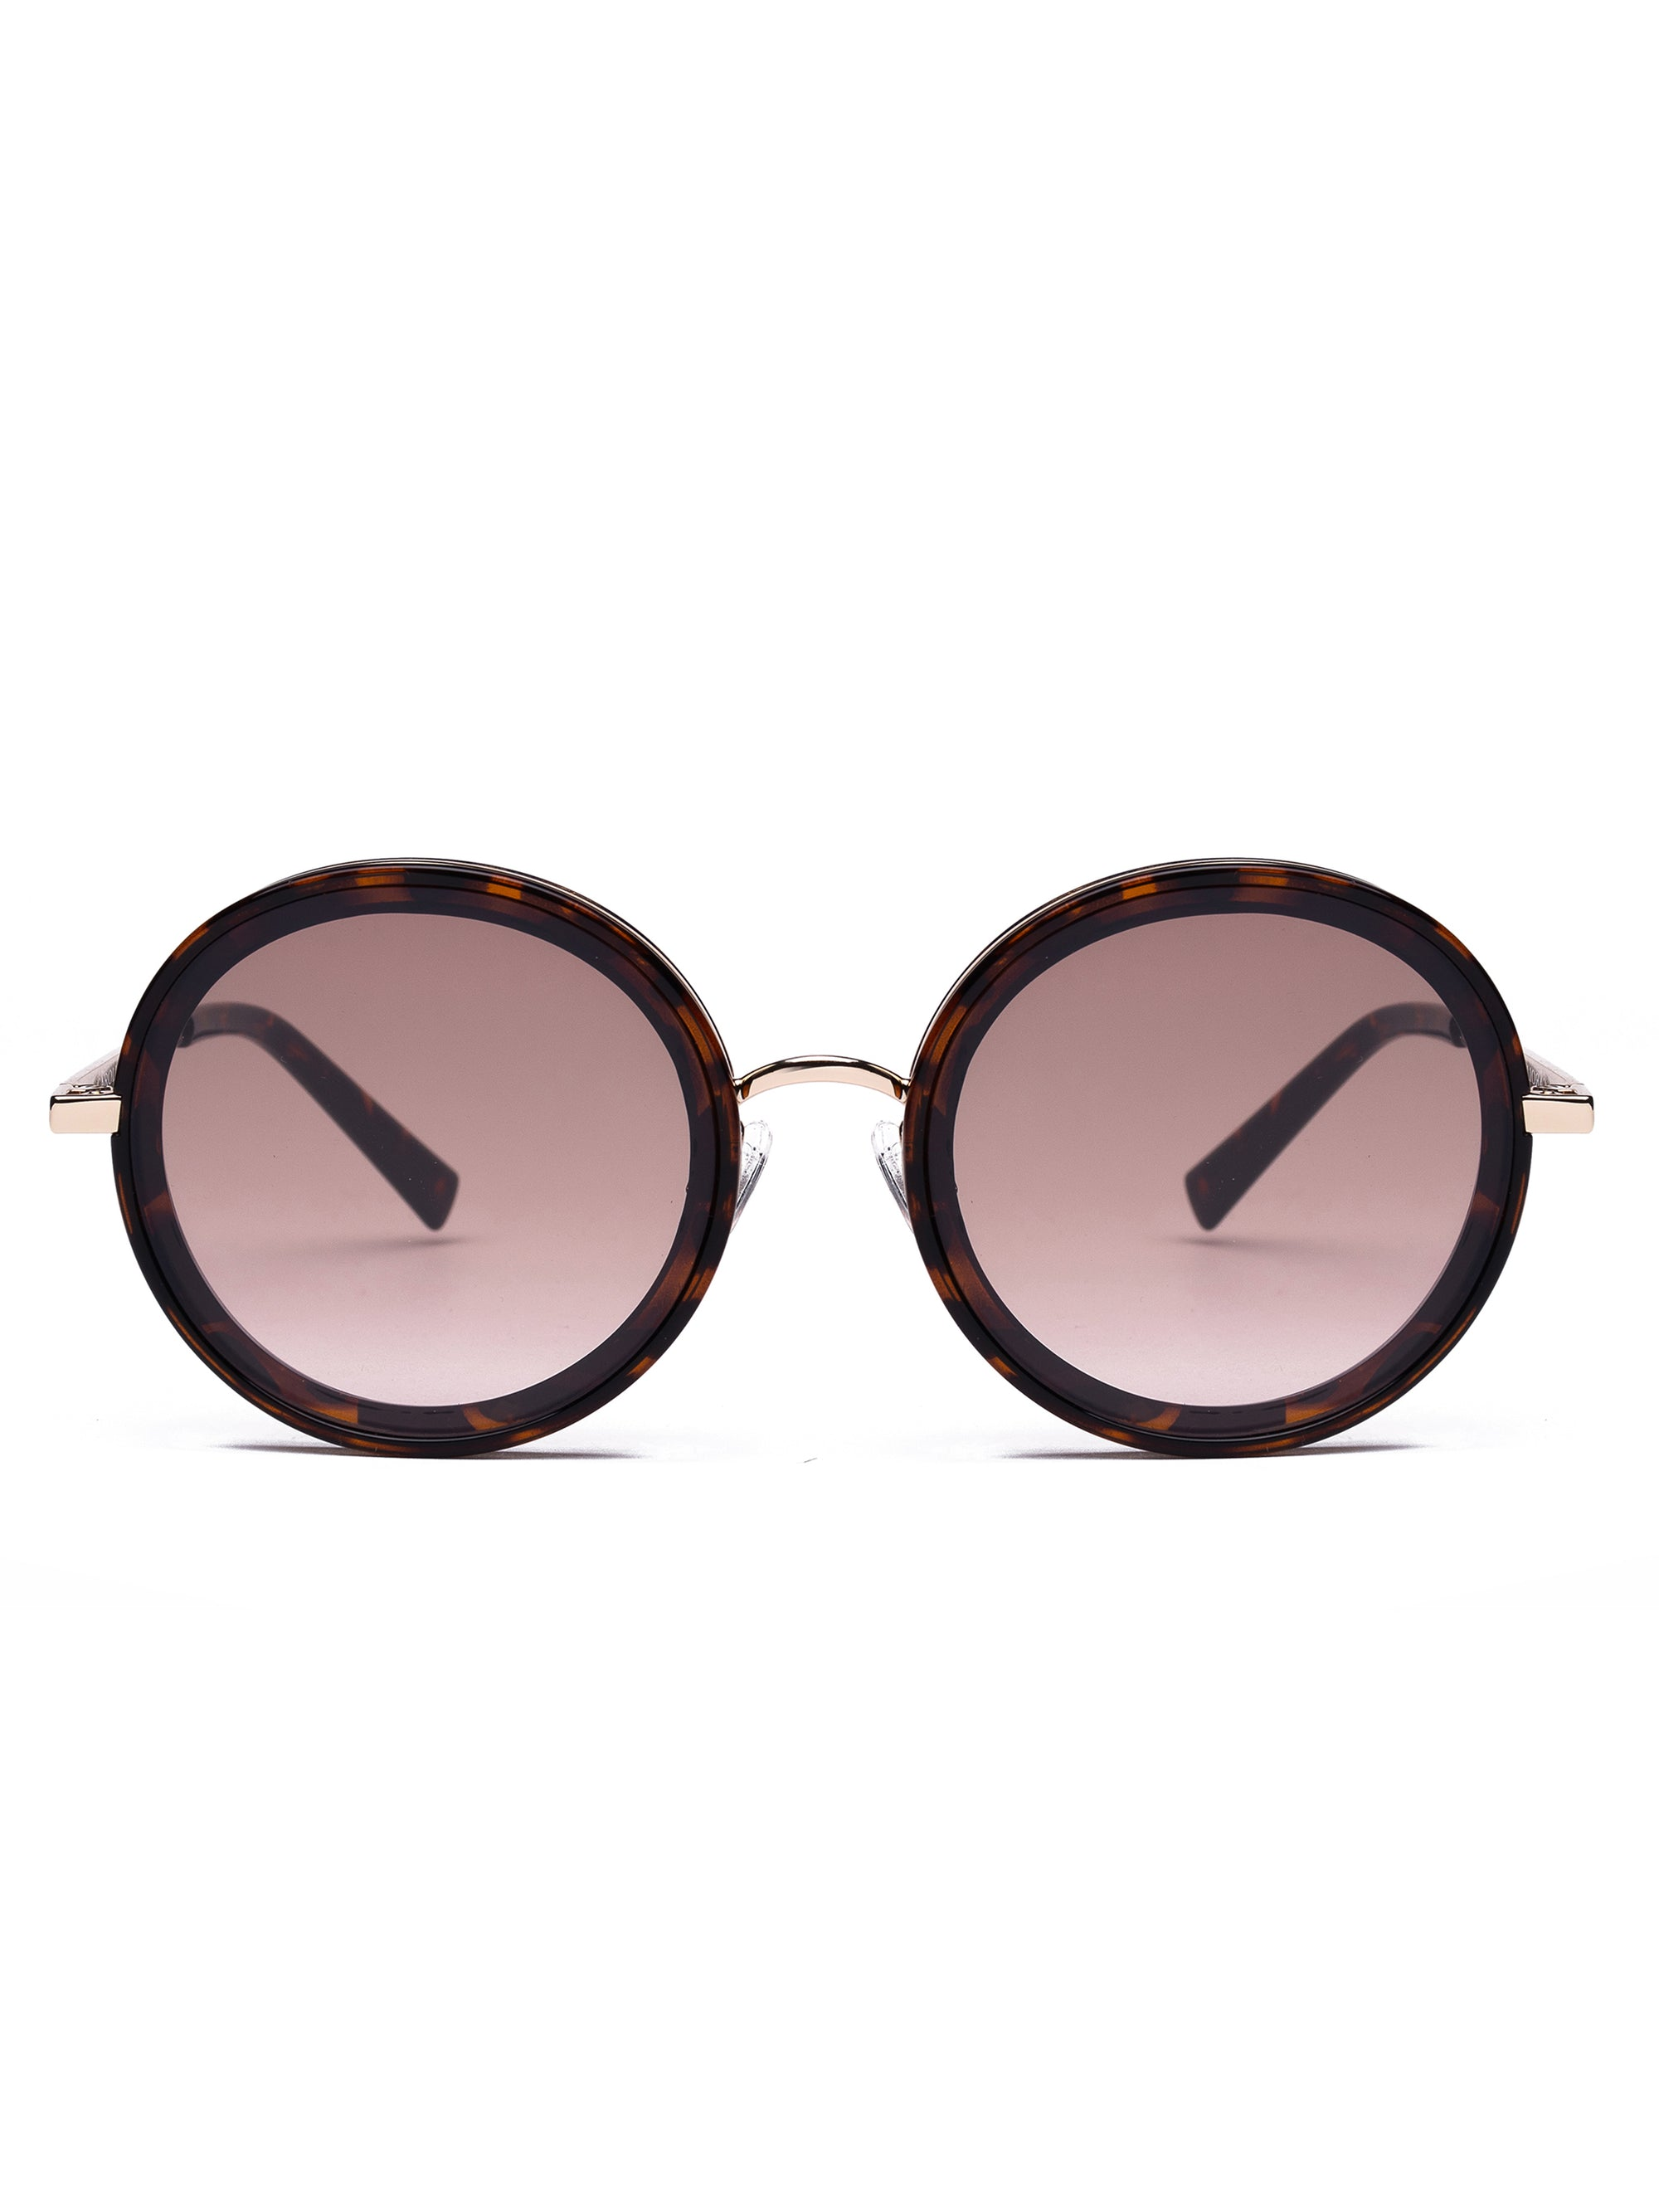 Lentes Carolina Lemke CL6681 05